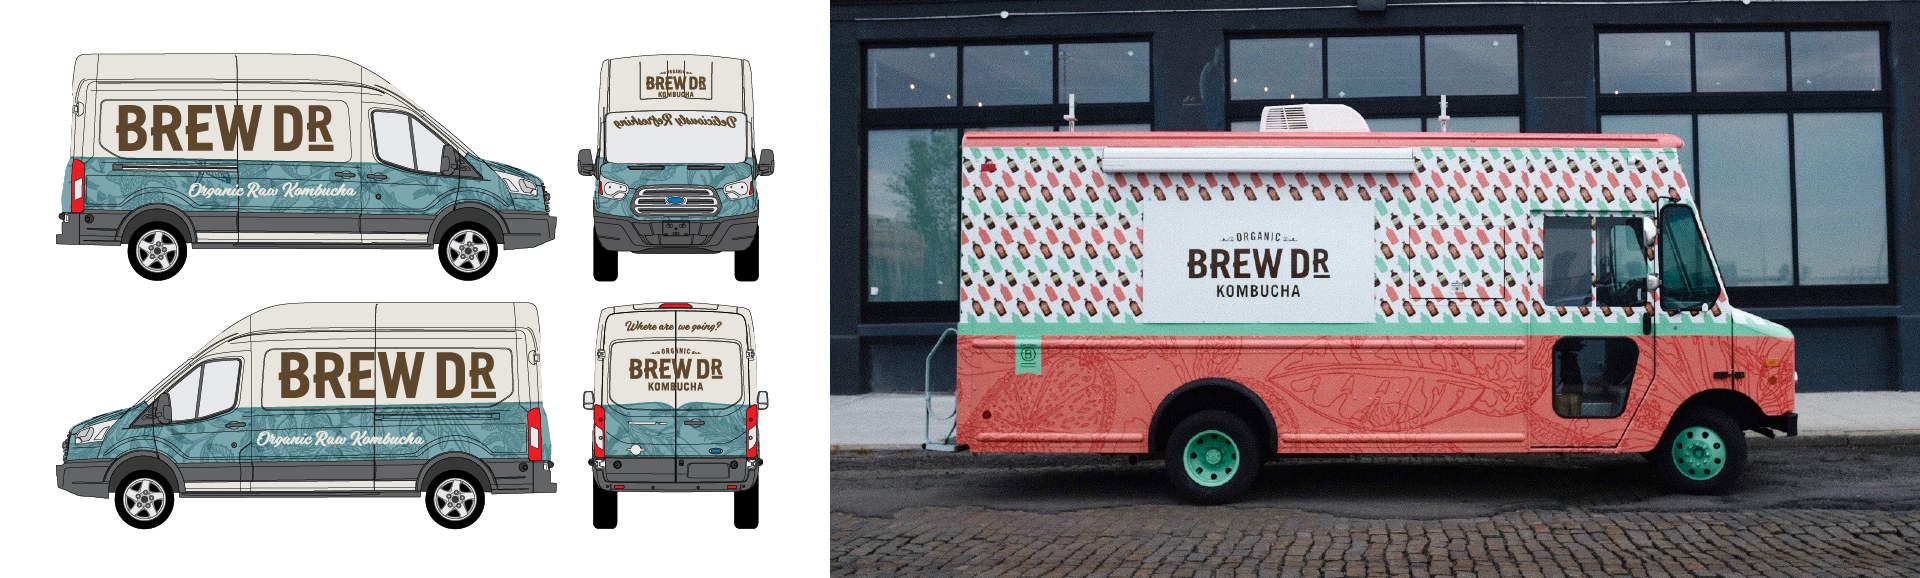 BrewDr-Vehicle-Wraps